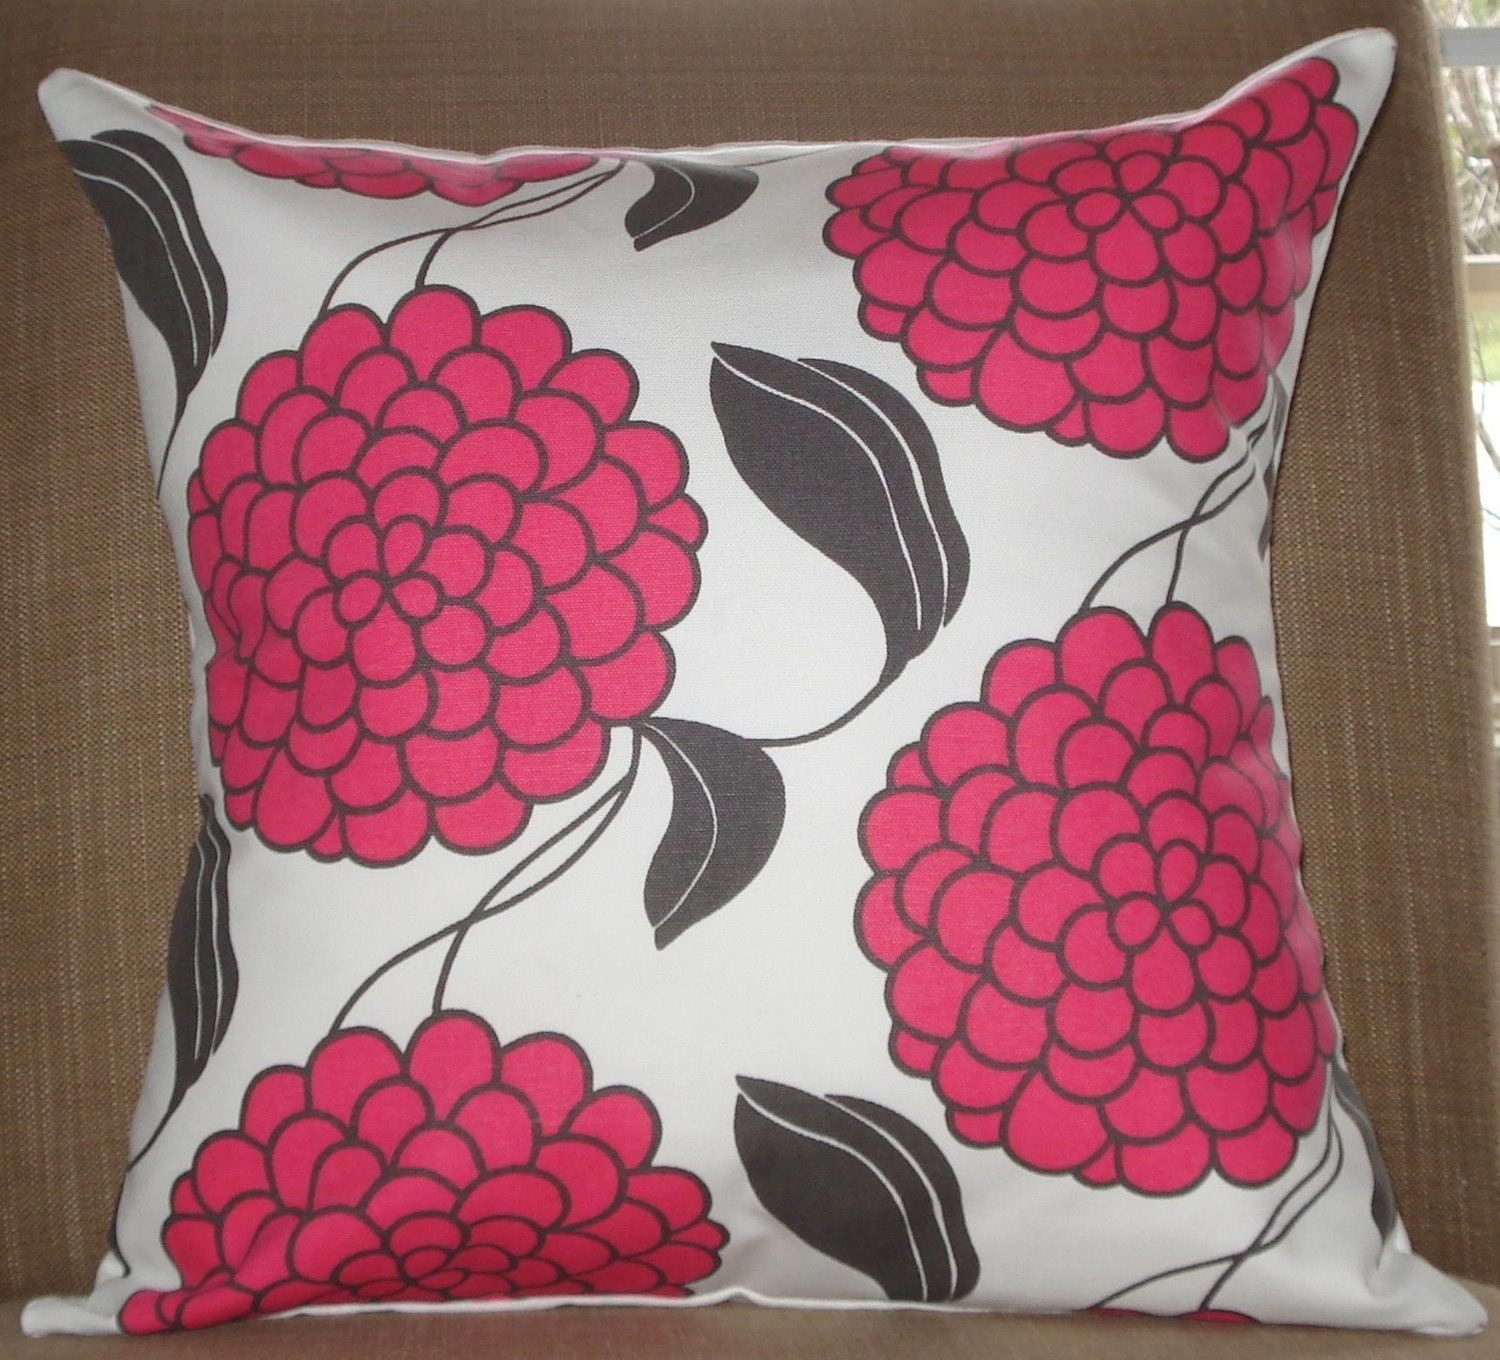 New 18x18 inch Designer Handmade Pillow Case with  pink and charcoal grey flowers on white.